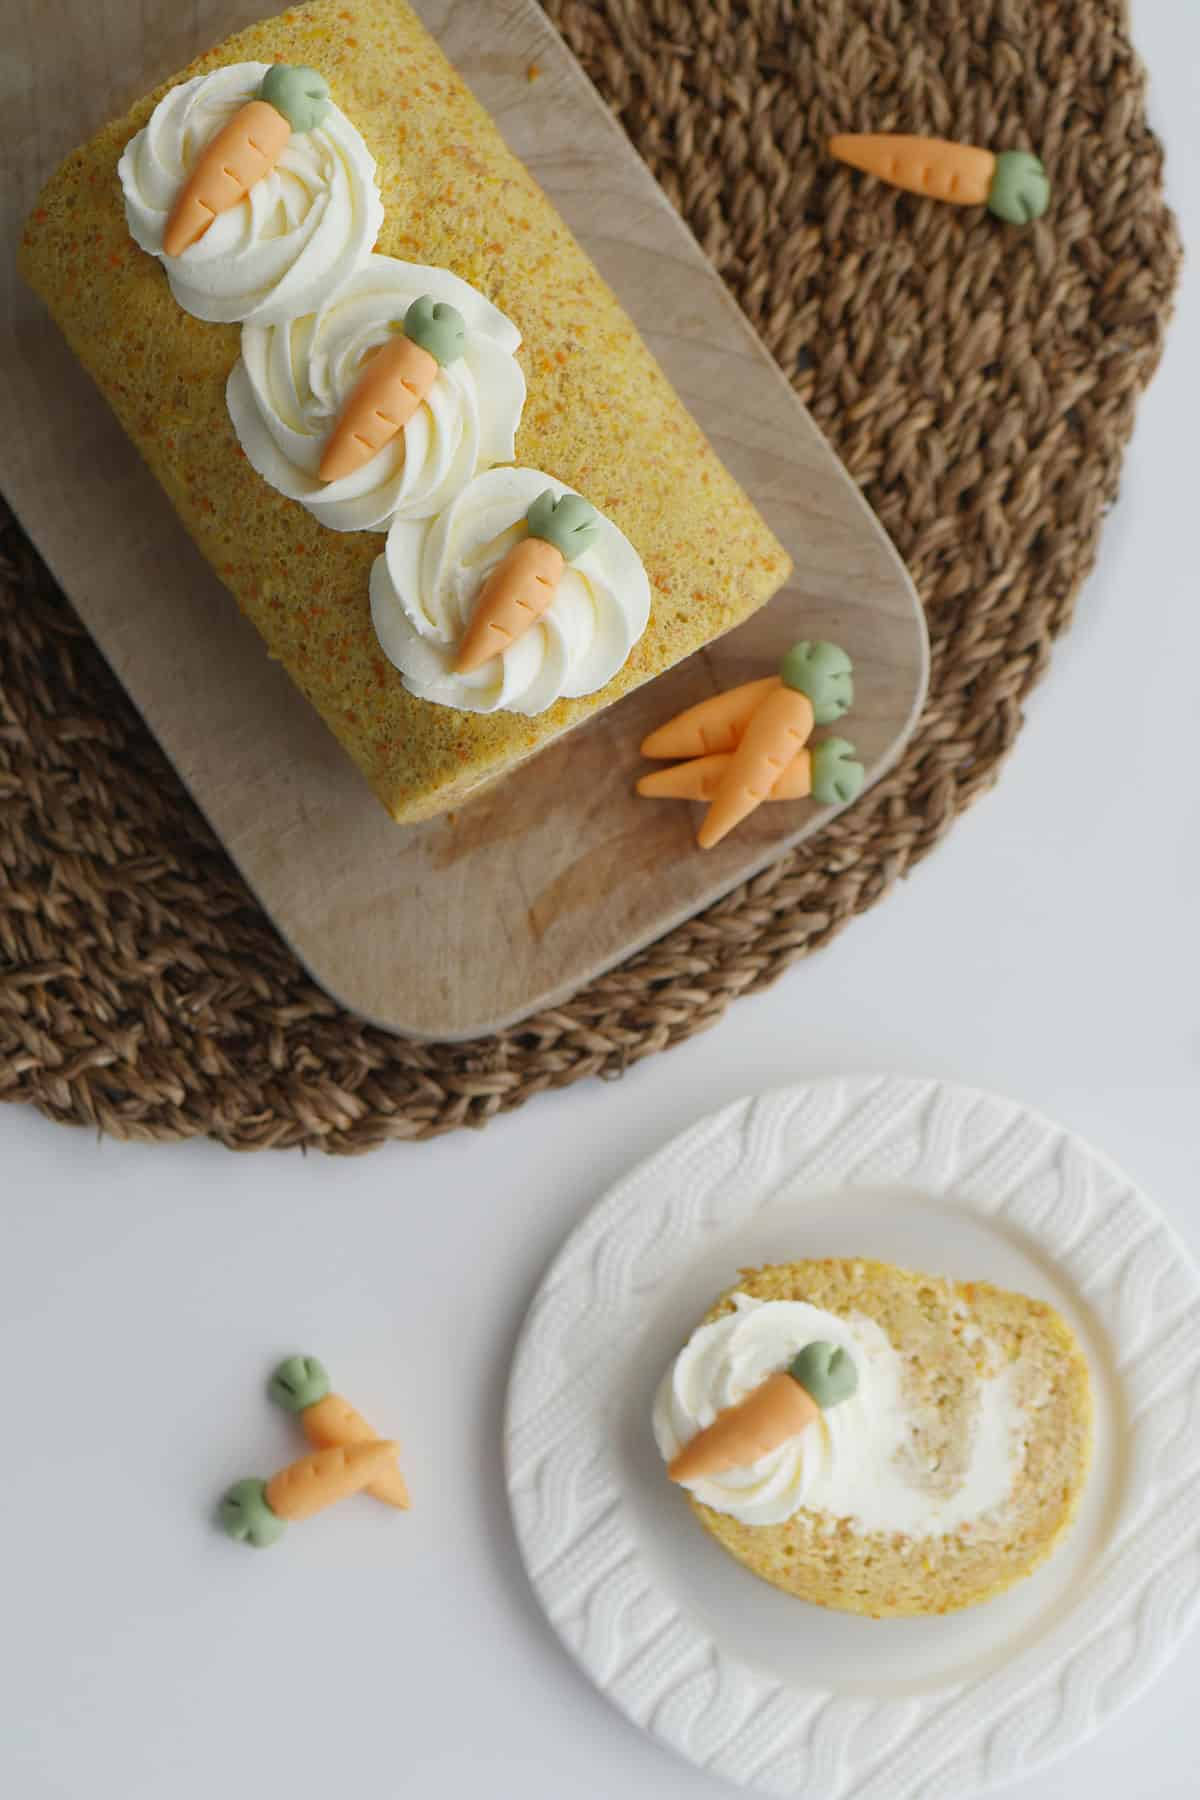 Top view of fully assembled carrot cake with a slice cut out and placed on a small plate.